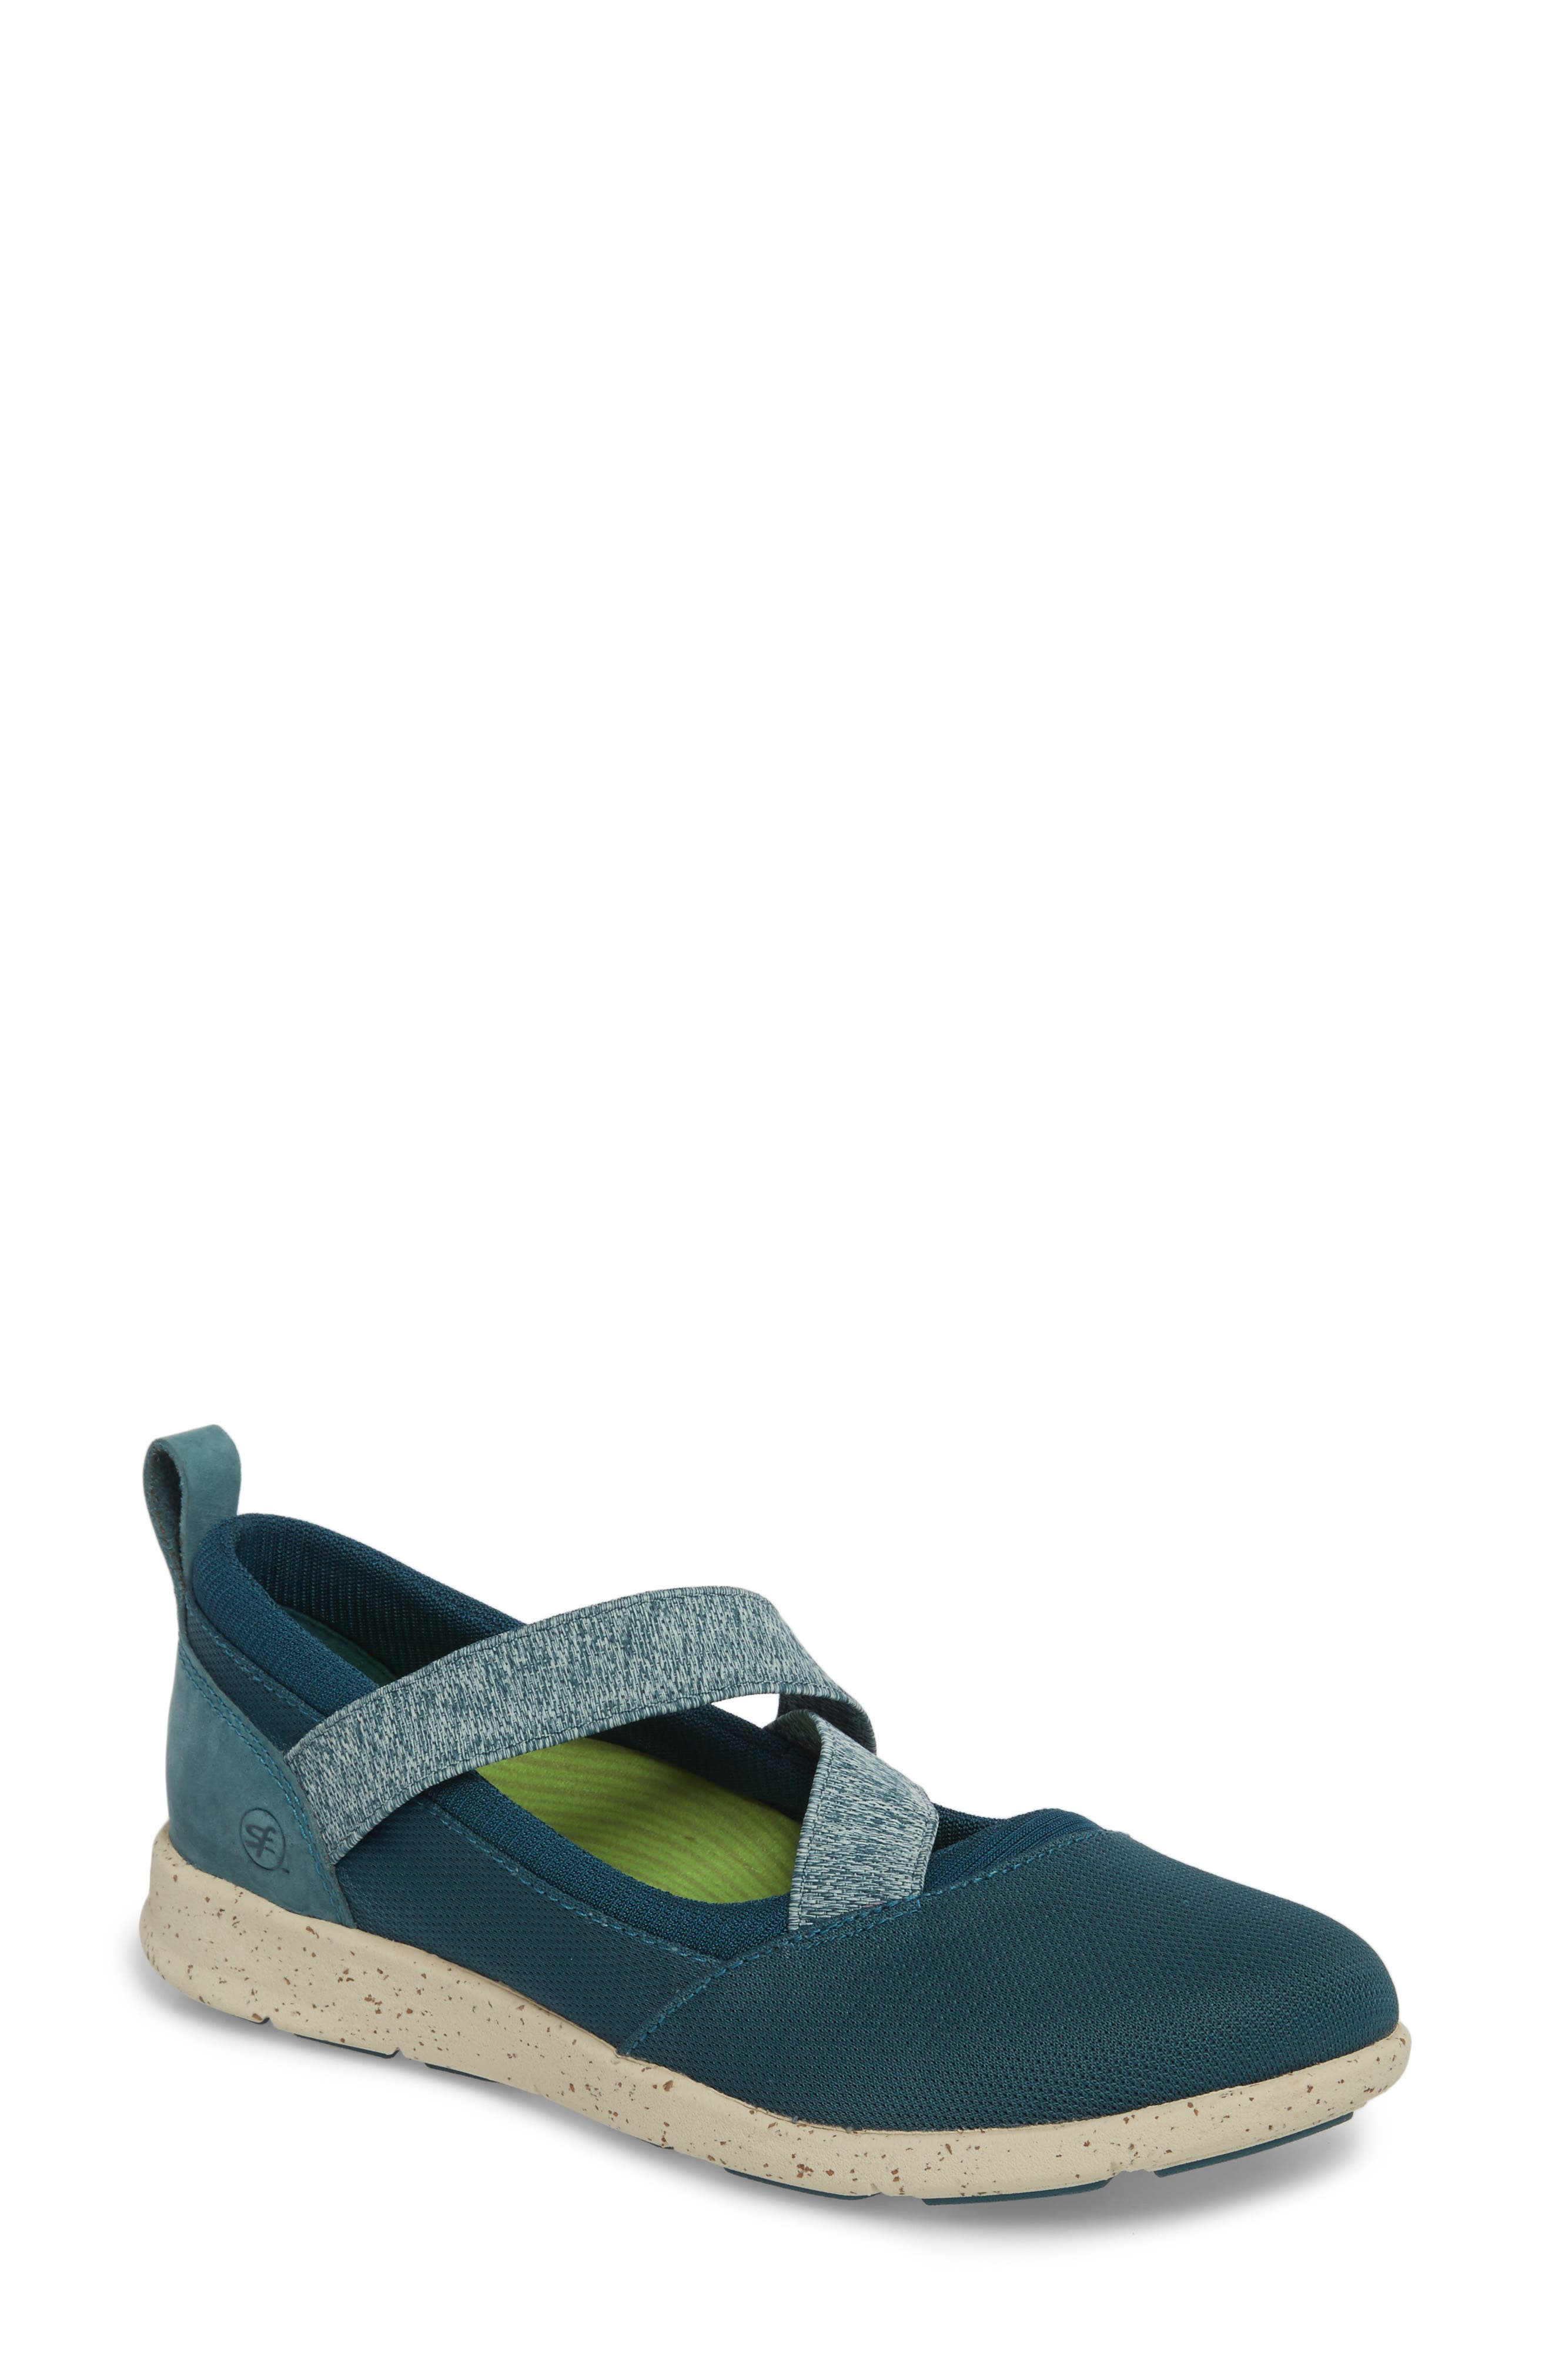 Palisade Sneaker,                             Main thumbnail 1, color,                             Balsam Blue Leather